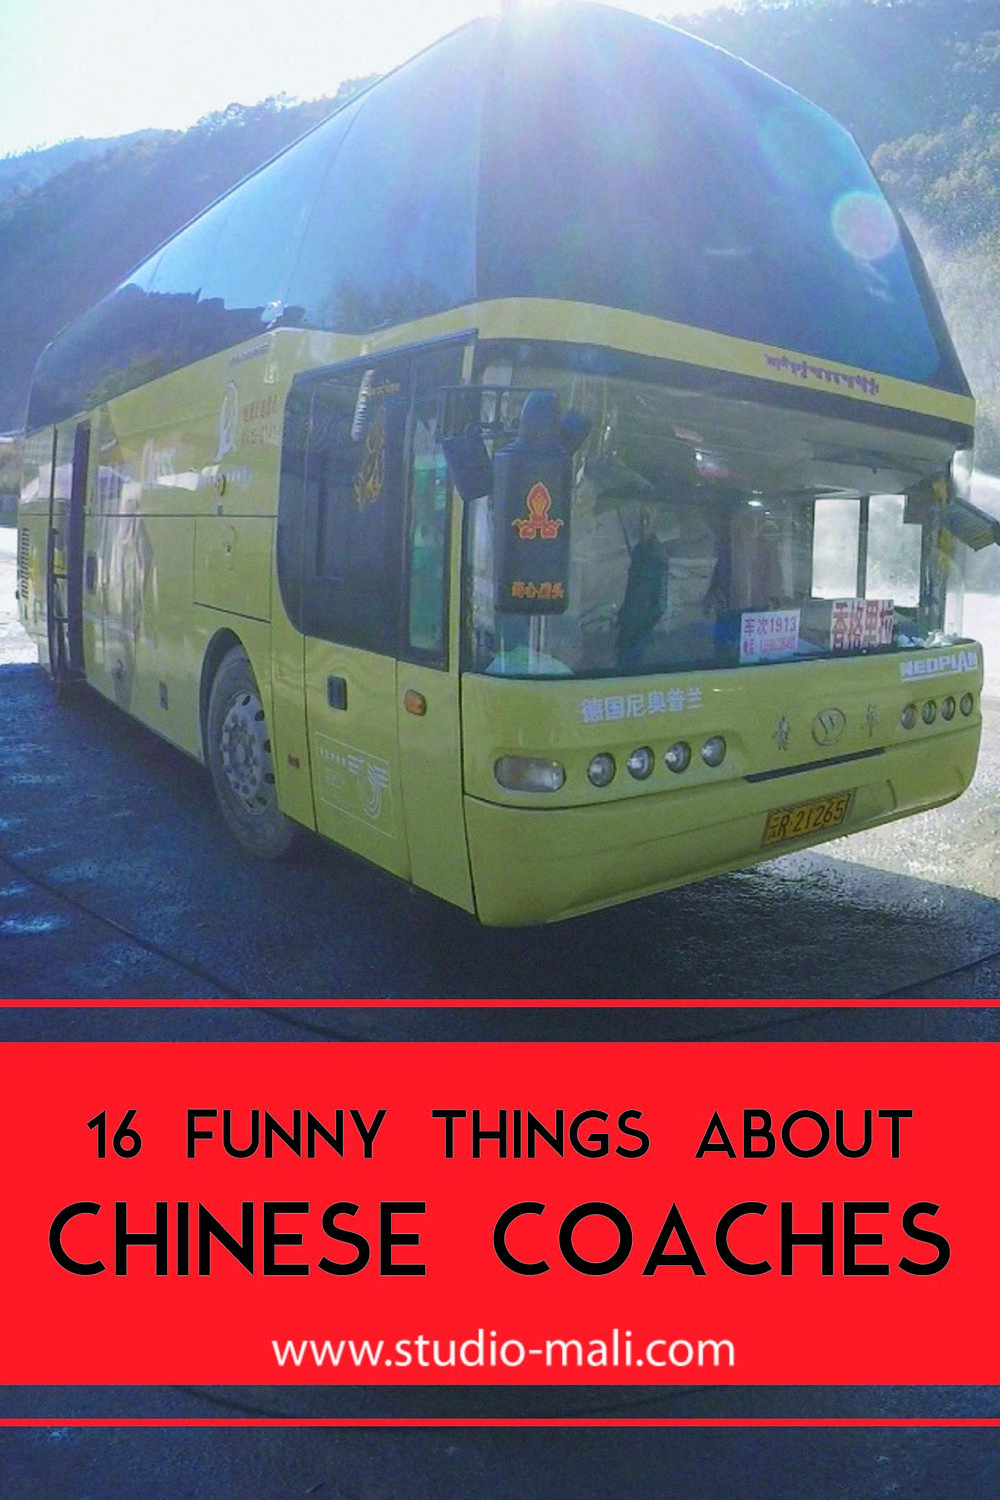 16 Funny Things About Chinese Coaches